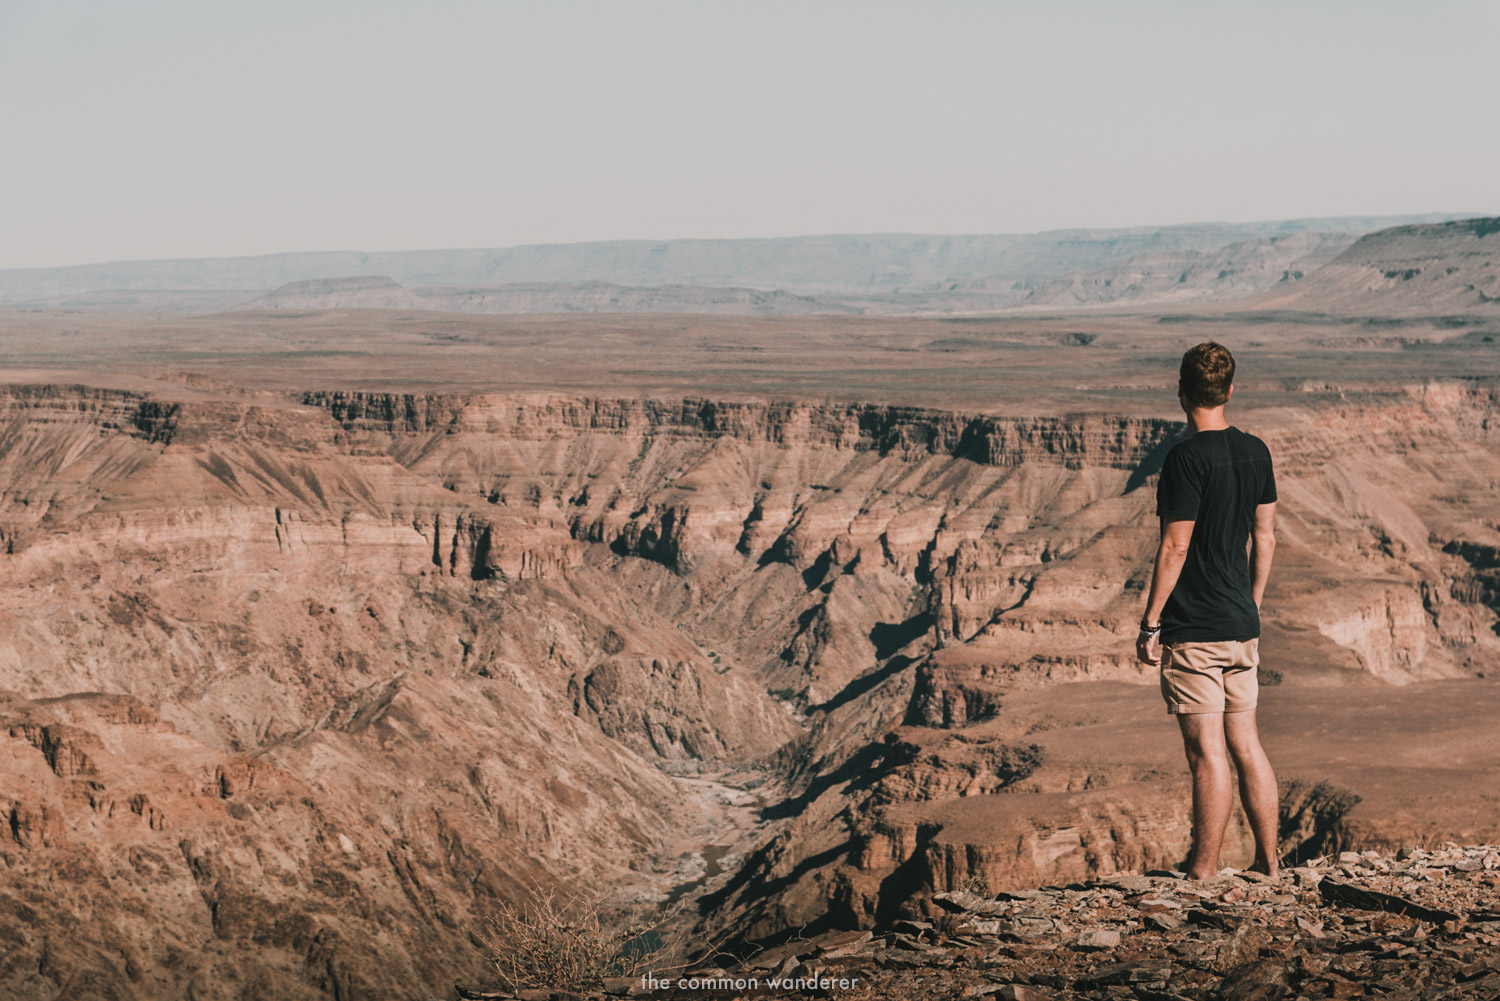 A man overlooks Fish River canyon in Namibia